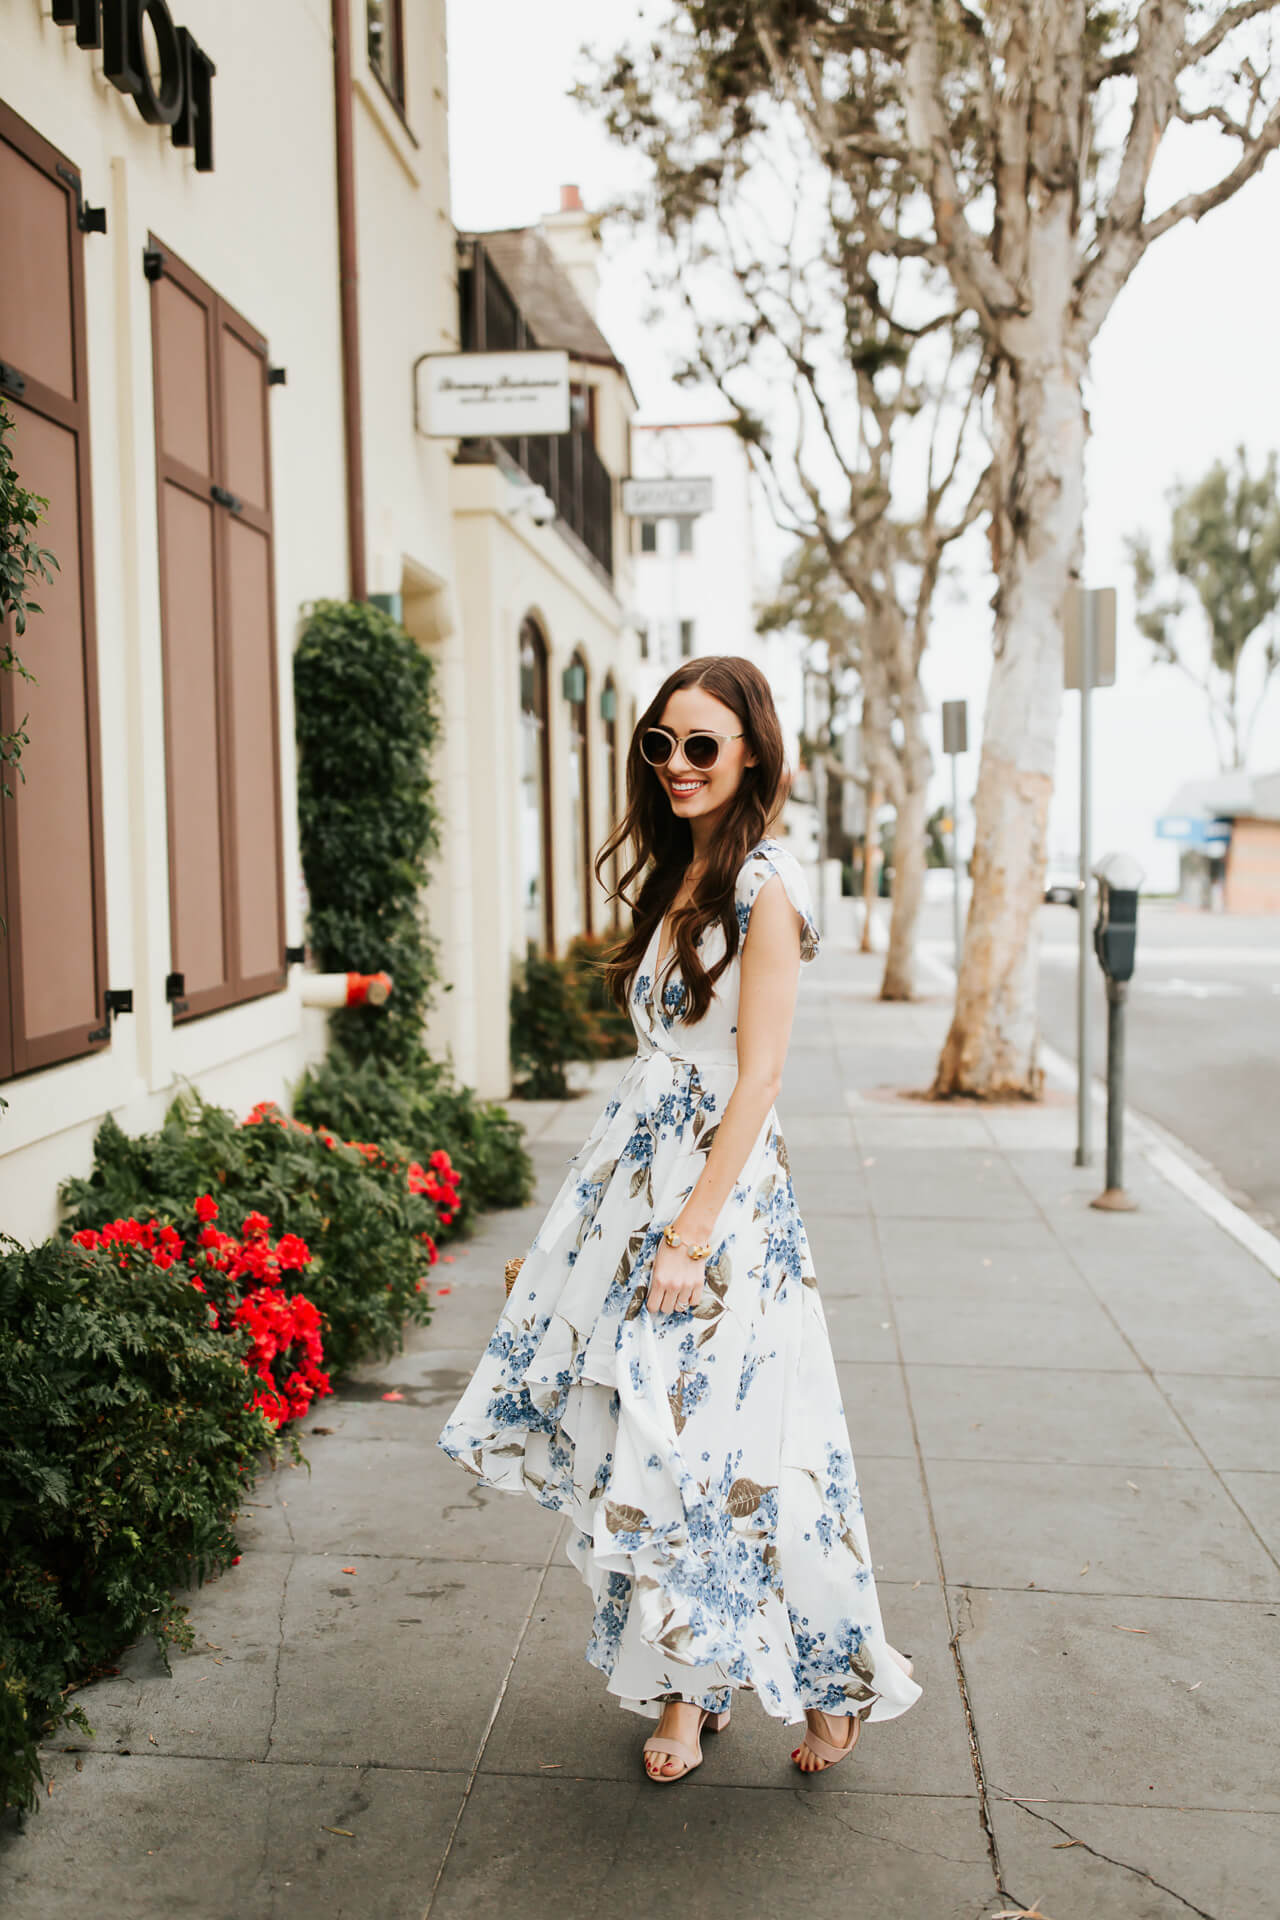 twirling in a lovely blue and white floral maxi dress